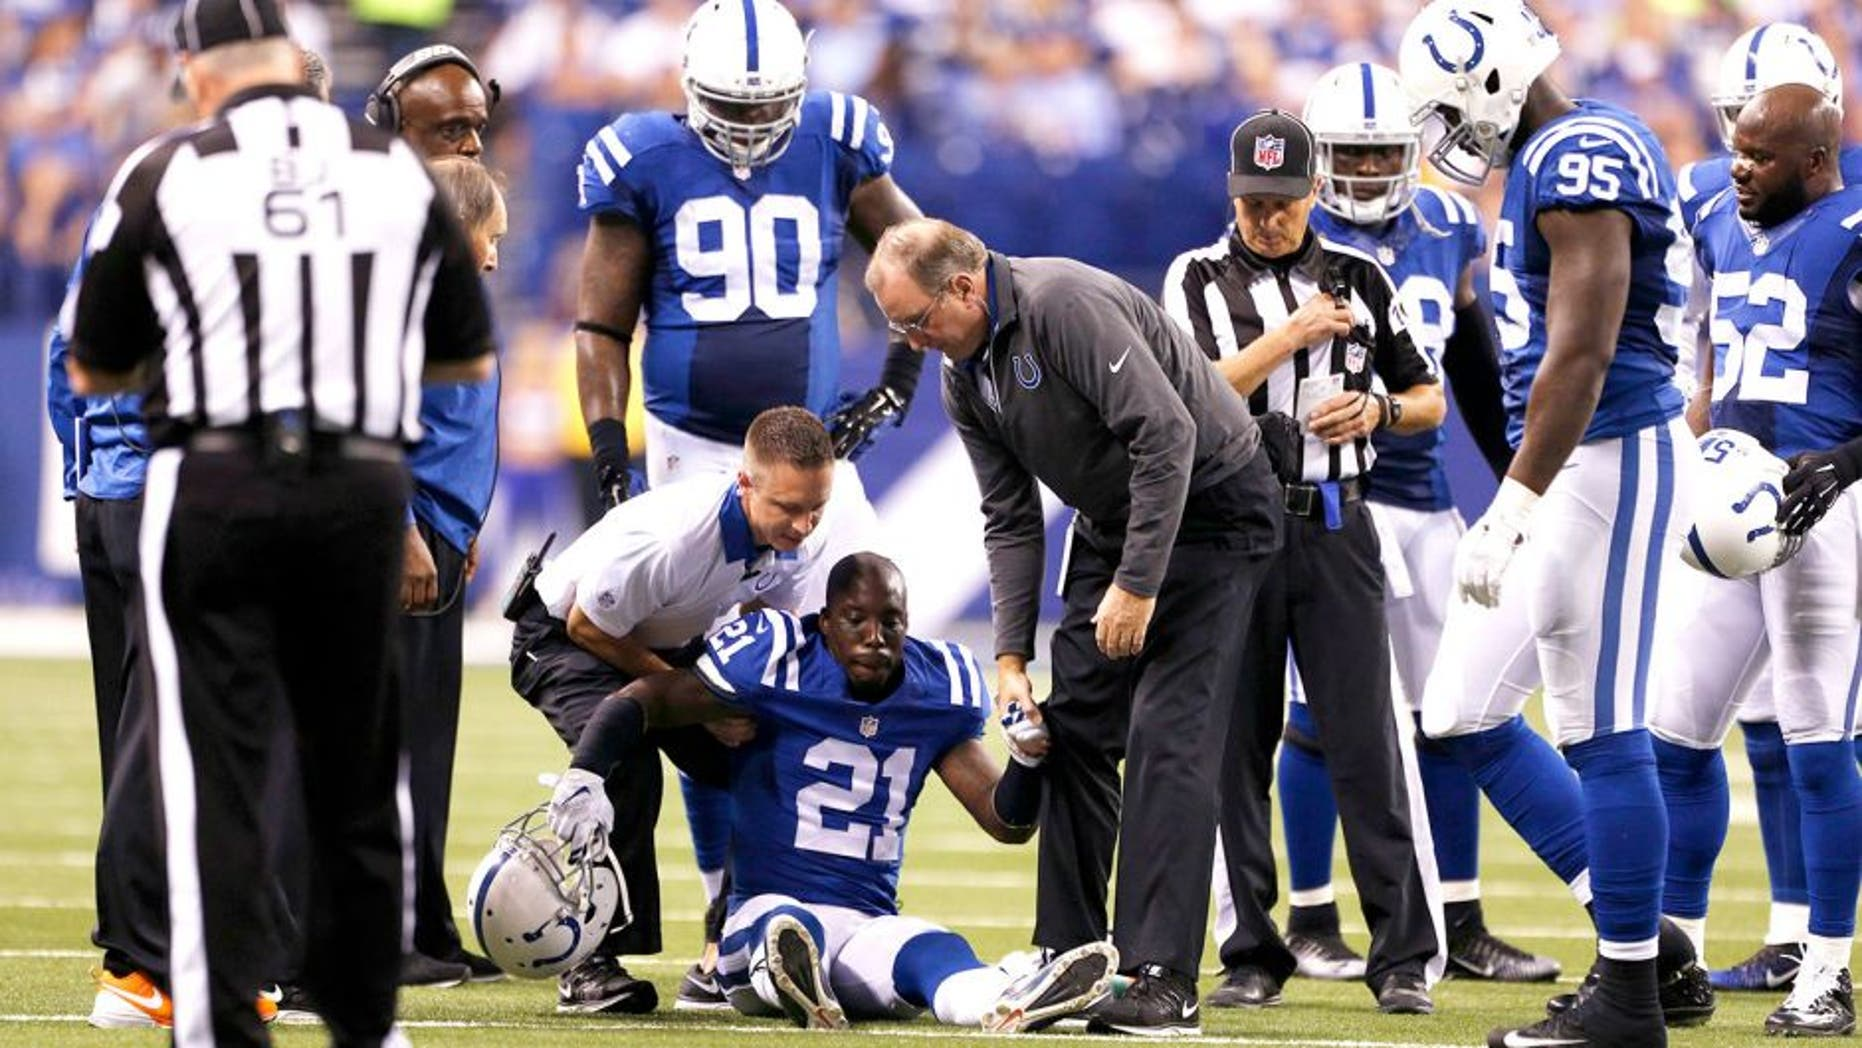 Sep 21, 2015; Indianapolis, IN, USA; Indianapolis Colts cornerback Vontae Davis (21) is helped off the ground after being hurt in a game against the New York Jets at Lucas Oil Stadium. Mandatory Credit: Brian Spurlock-USA TODAY Sports